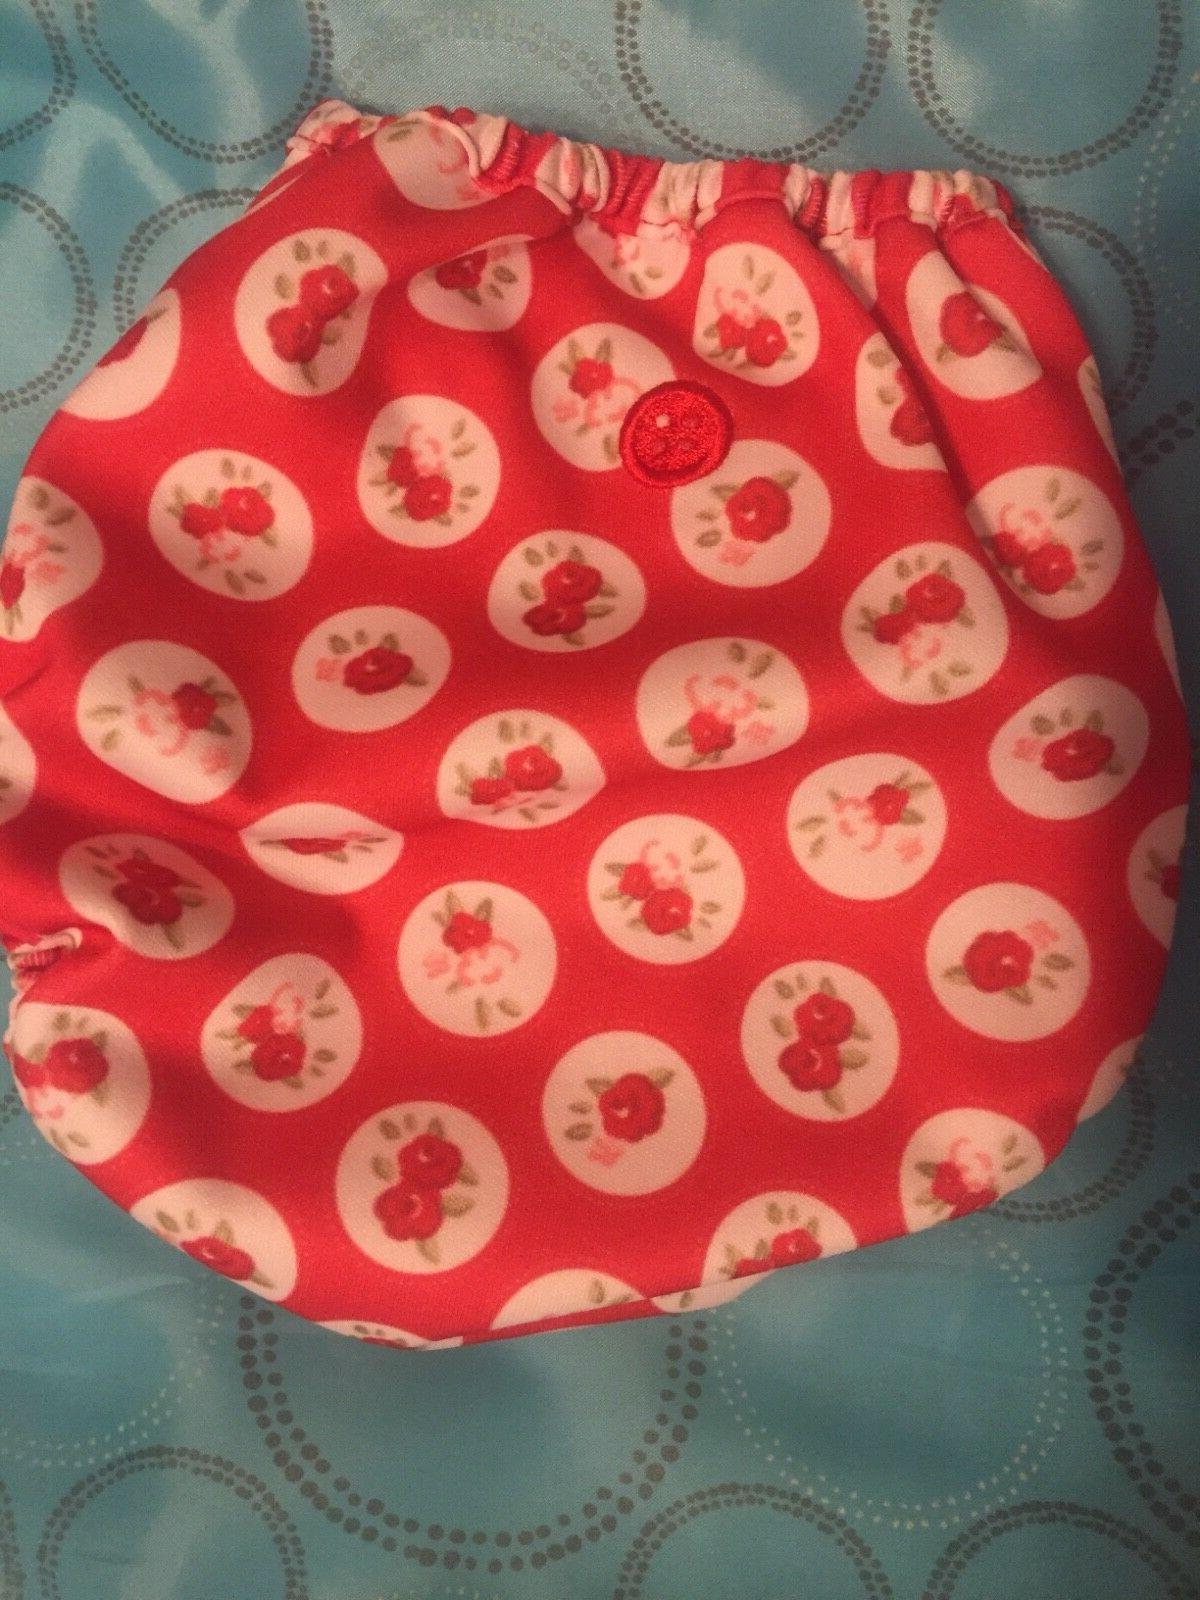 12 buttons cloth diaper covers to choose